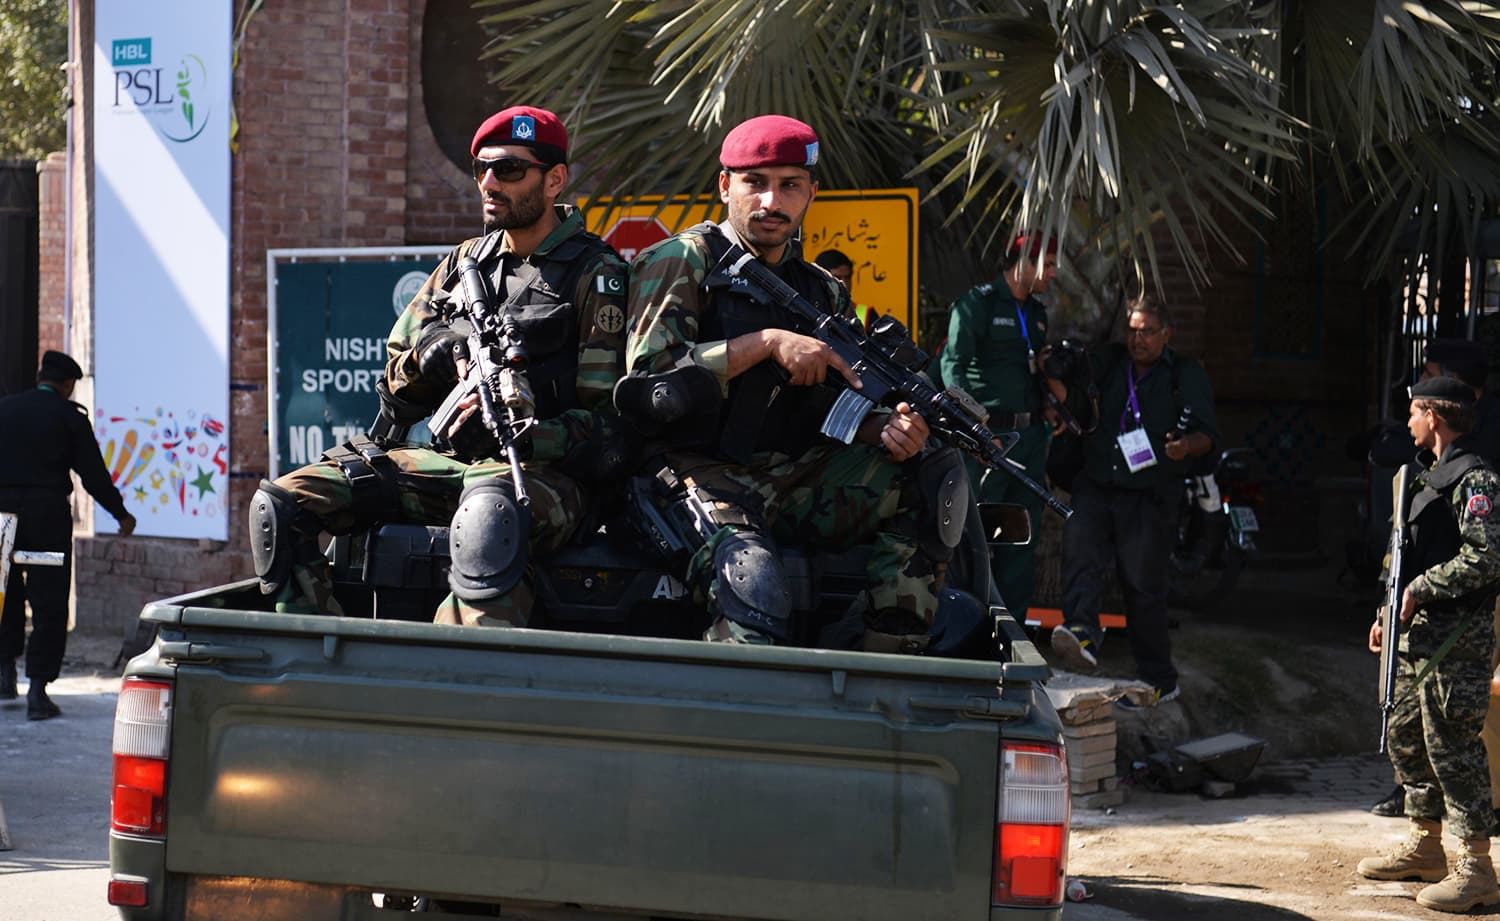 Pakistani soldiers sit in a vehicle as they patrol at an entry gate of Gaddafi Stadium. ─ AFP